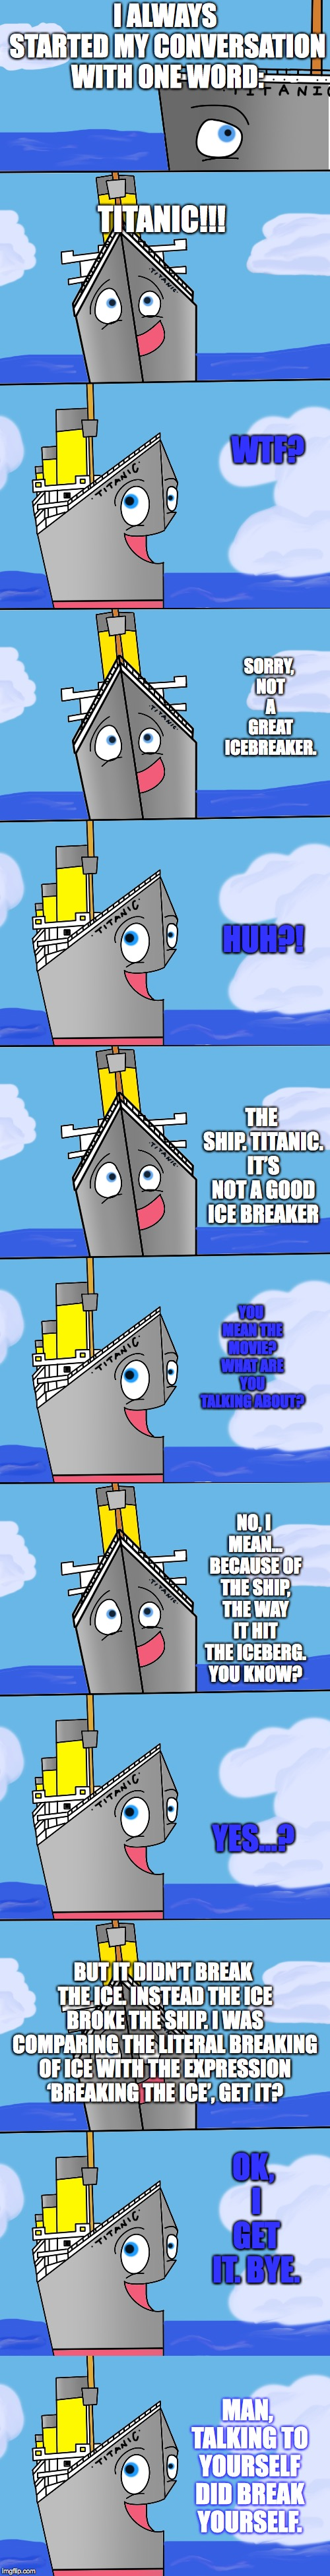 Bad Pun Titanic #20 special | I ALWAYS STARTED MY CONVERSATION WITH ONE WORD: TITANIC!!! WTF? SORRY, NOT A GREAT ICEBREAKER. HUH?! THE SHIP. TITANIC. IT'S NOT A GOOD ICE  | image tagged in bad pun,titanic,special,iceberg,bad jokes,funny joke | made w/ Imgflip meme maker